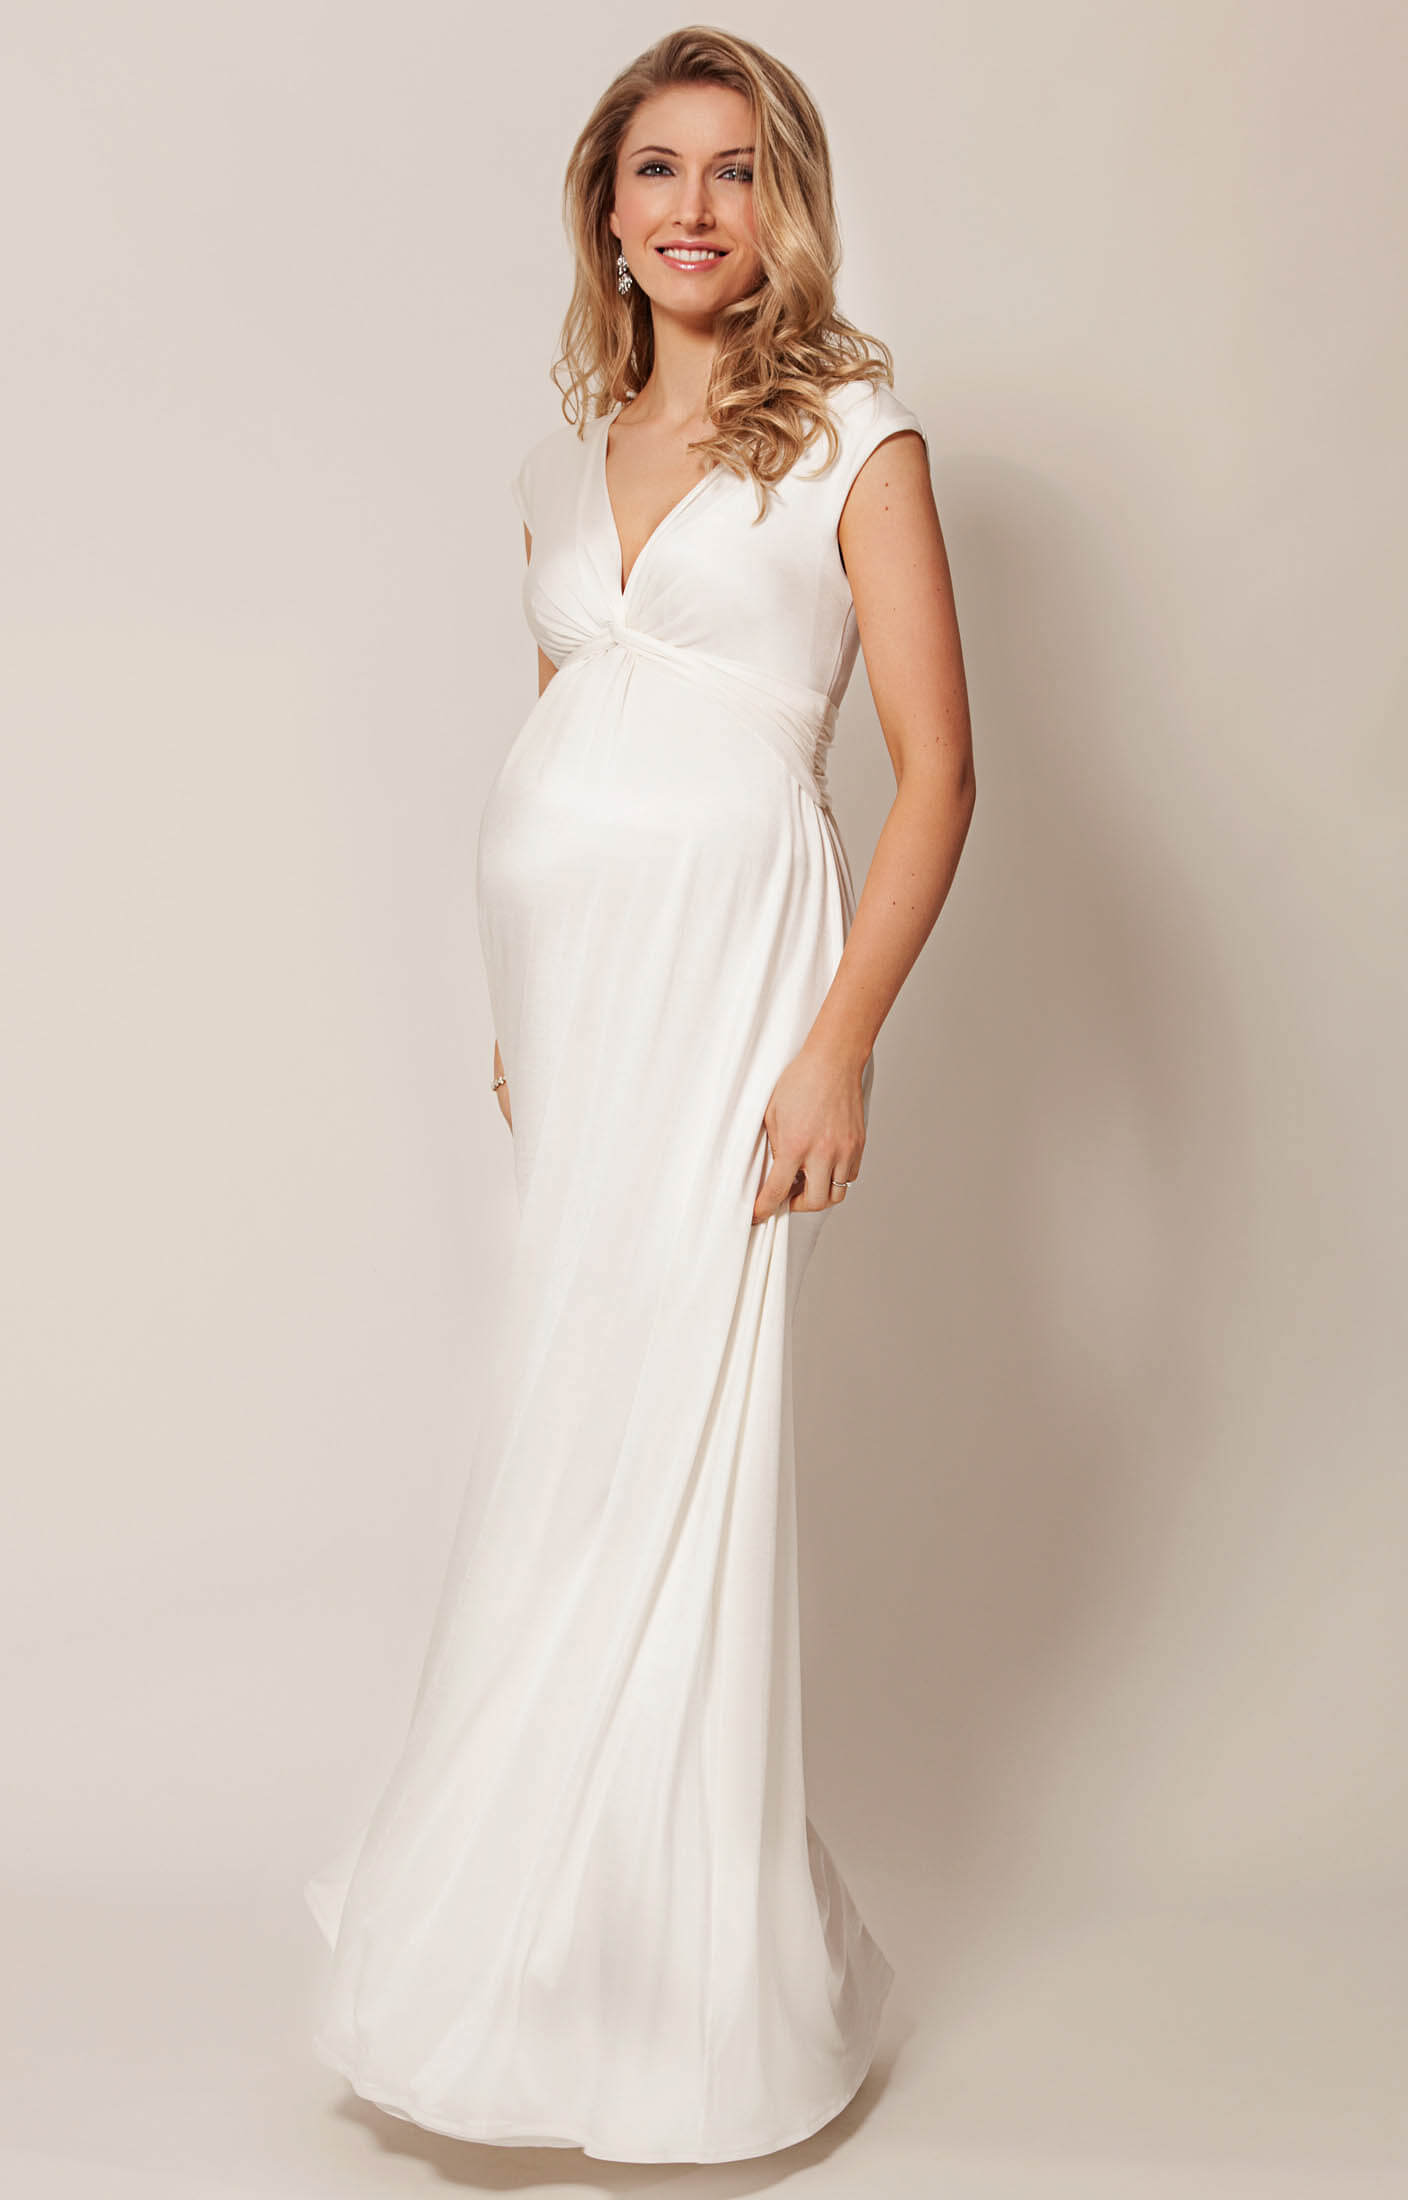 Clara maternity wedding gown long ivory maternity for Maternity dresses for wedding party